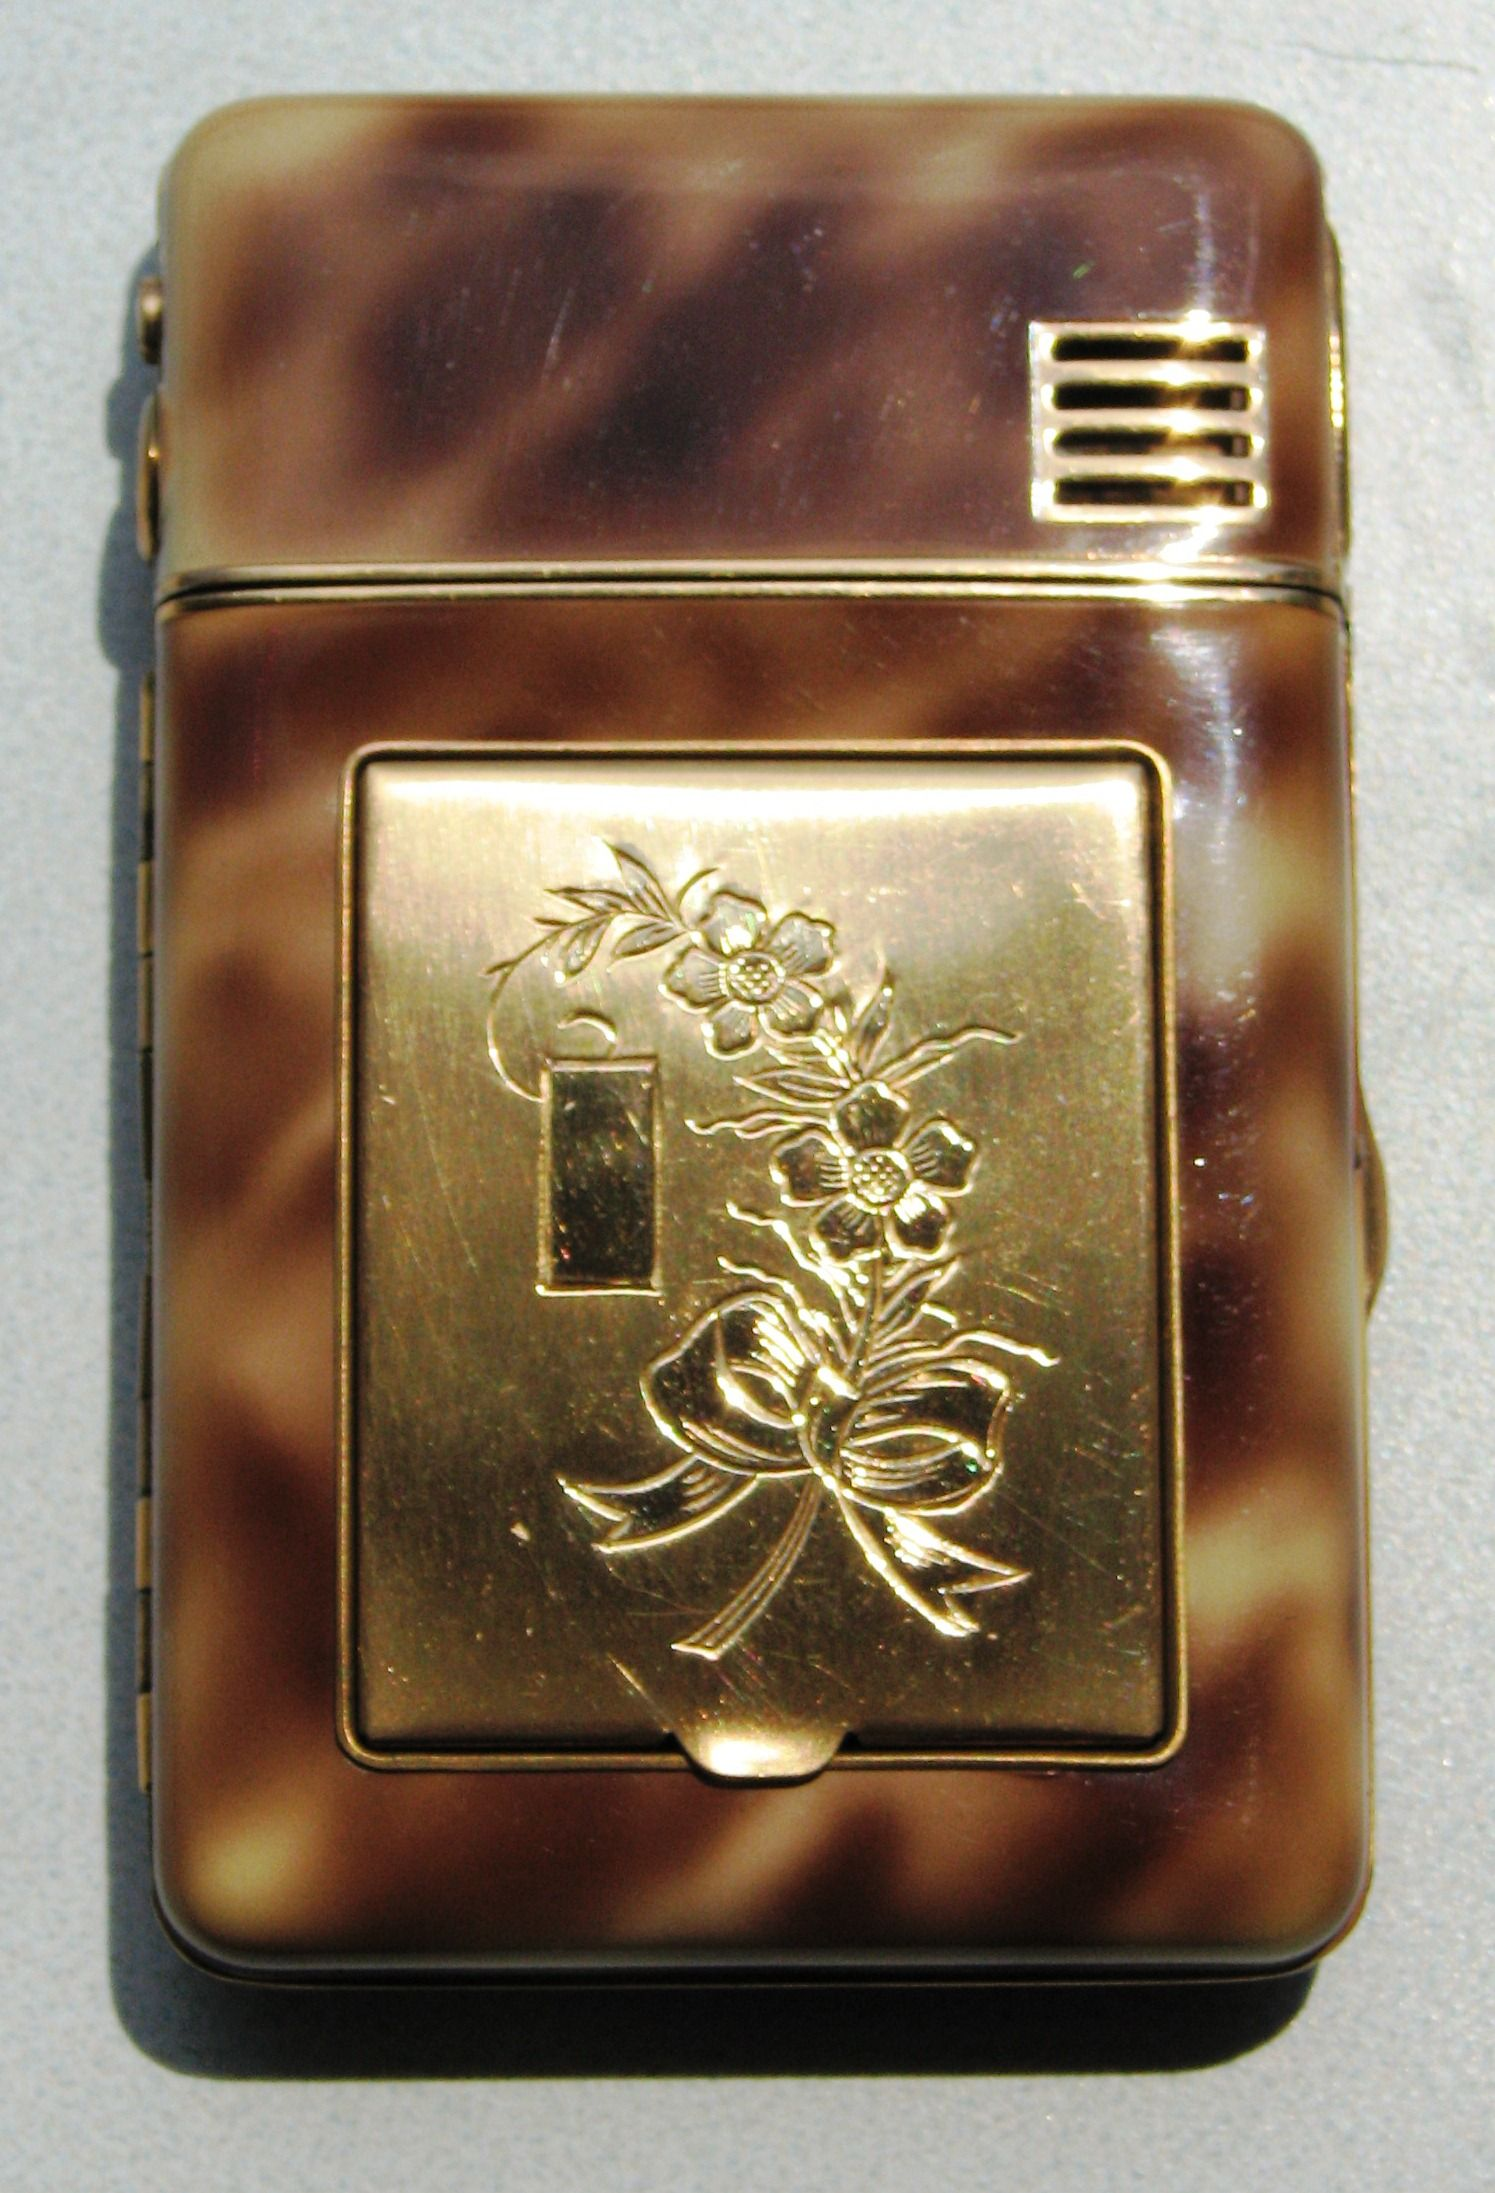 Pin on Vintage Women's Powder Compact Collection Barbara